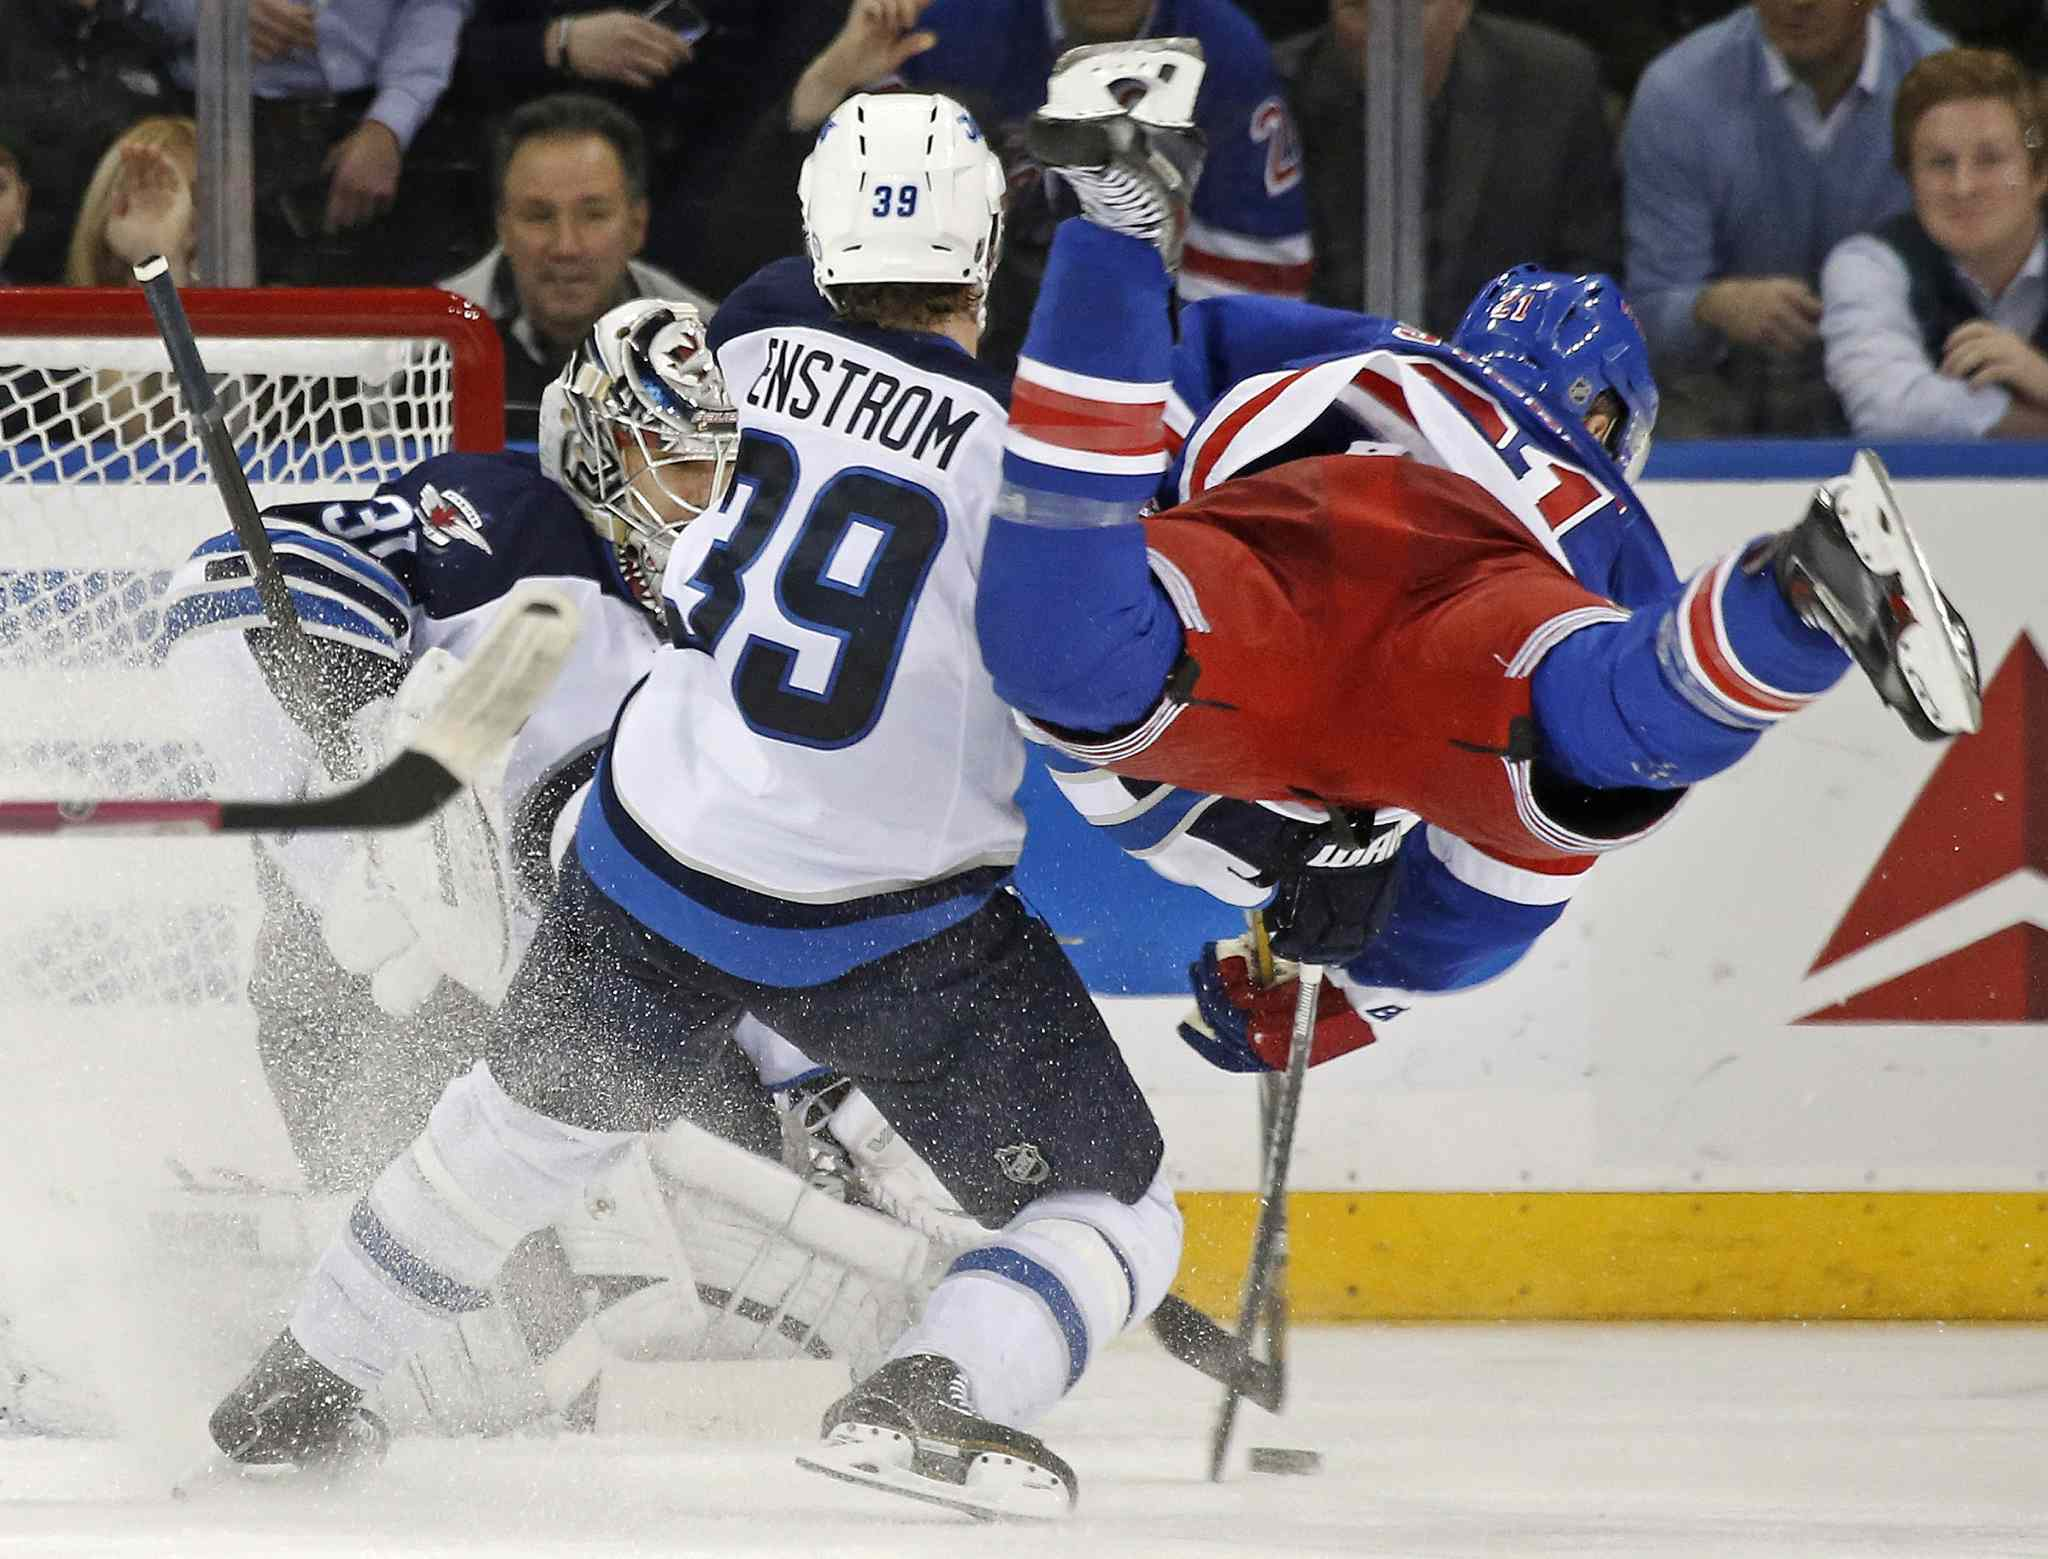 Winnipeg Jets defenceman Tobias Enstrom sends New York Rangers centre Derek Stepan airborne Jets goalie Ondrej Pavelec makes a save in the third period of a NHL game at Madison Square Garden in New York, Monday. The Jets defeated the Rangers 5-2.